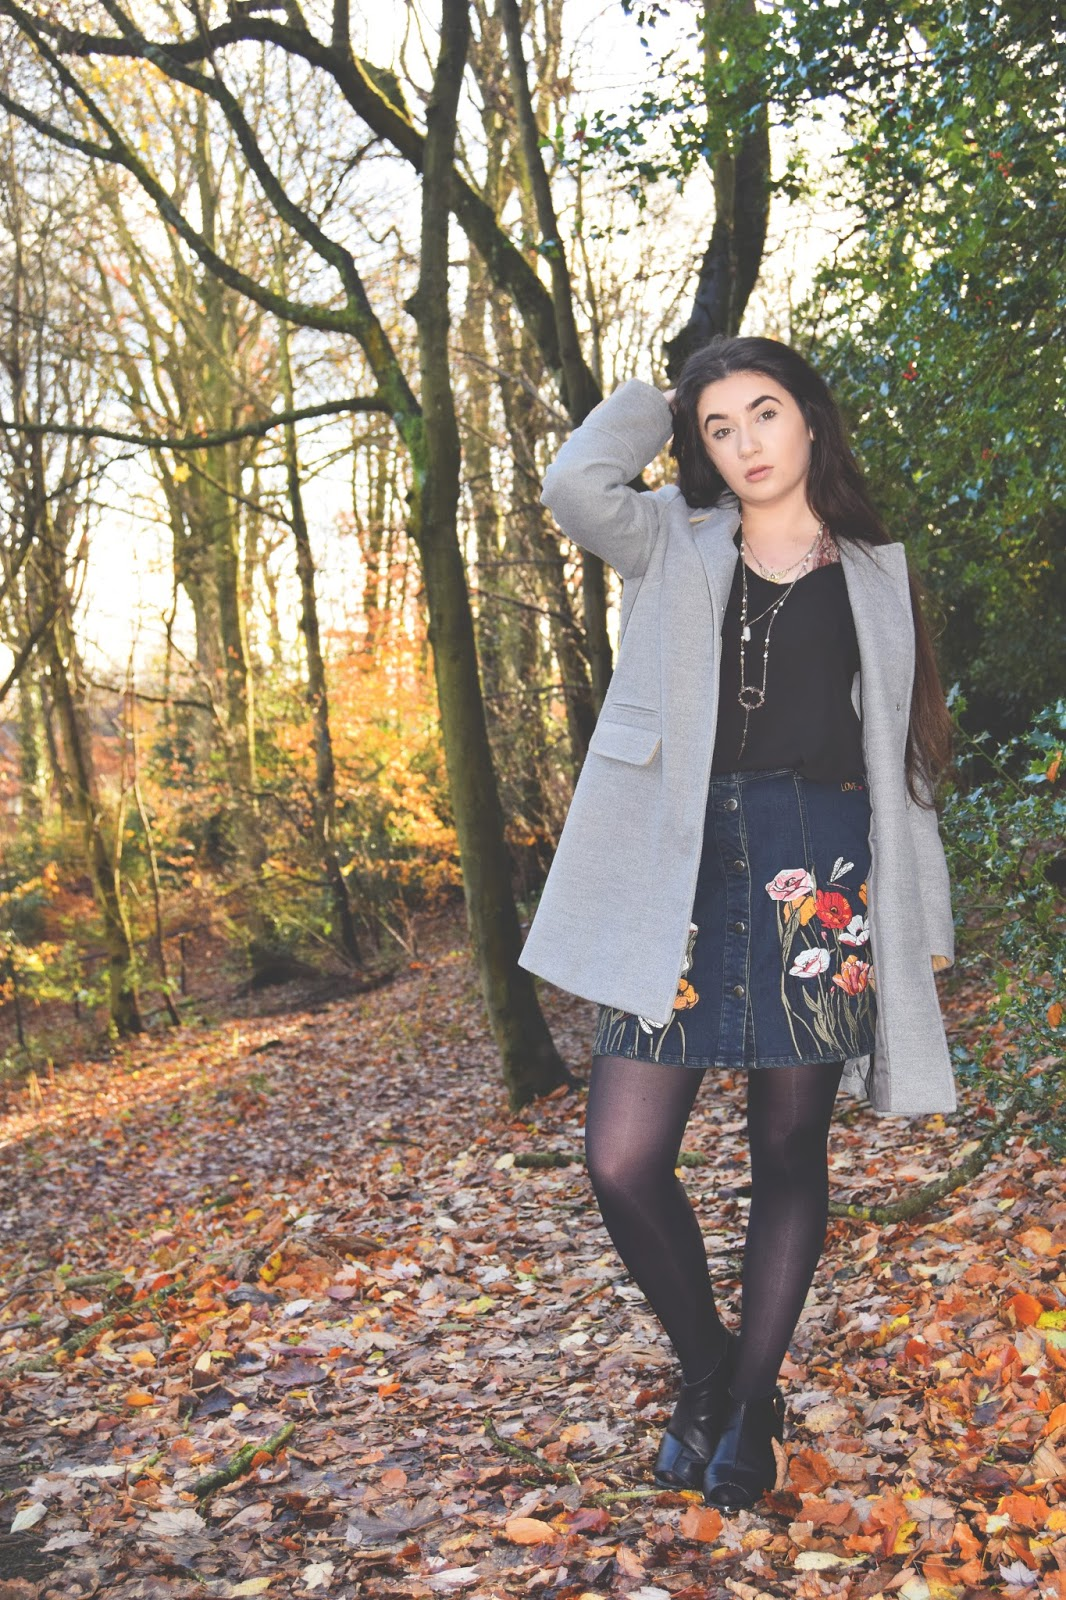 autumn embroidered outfit